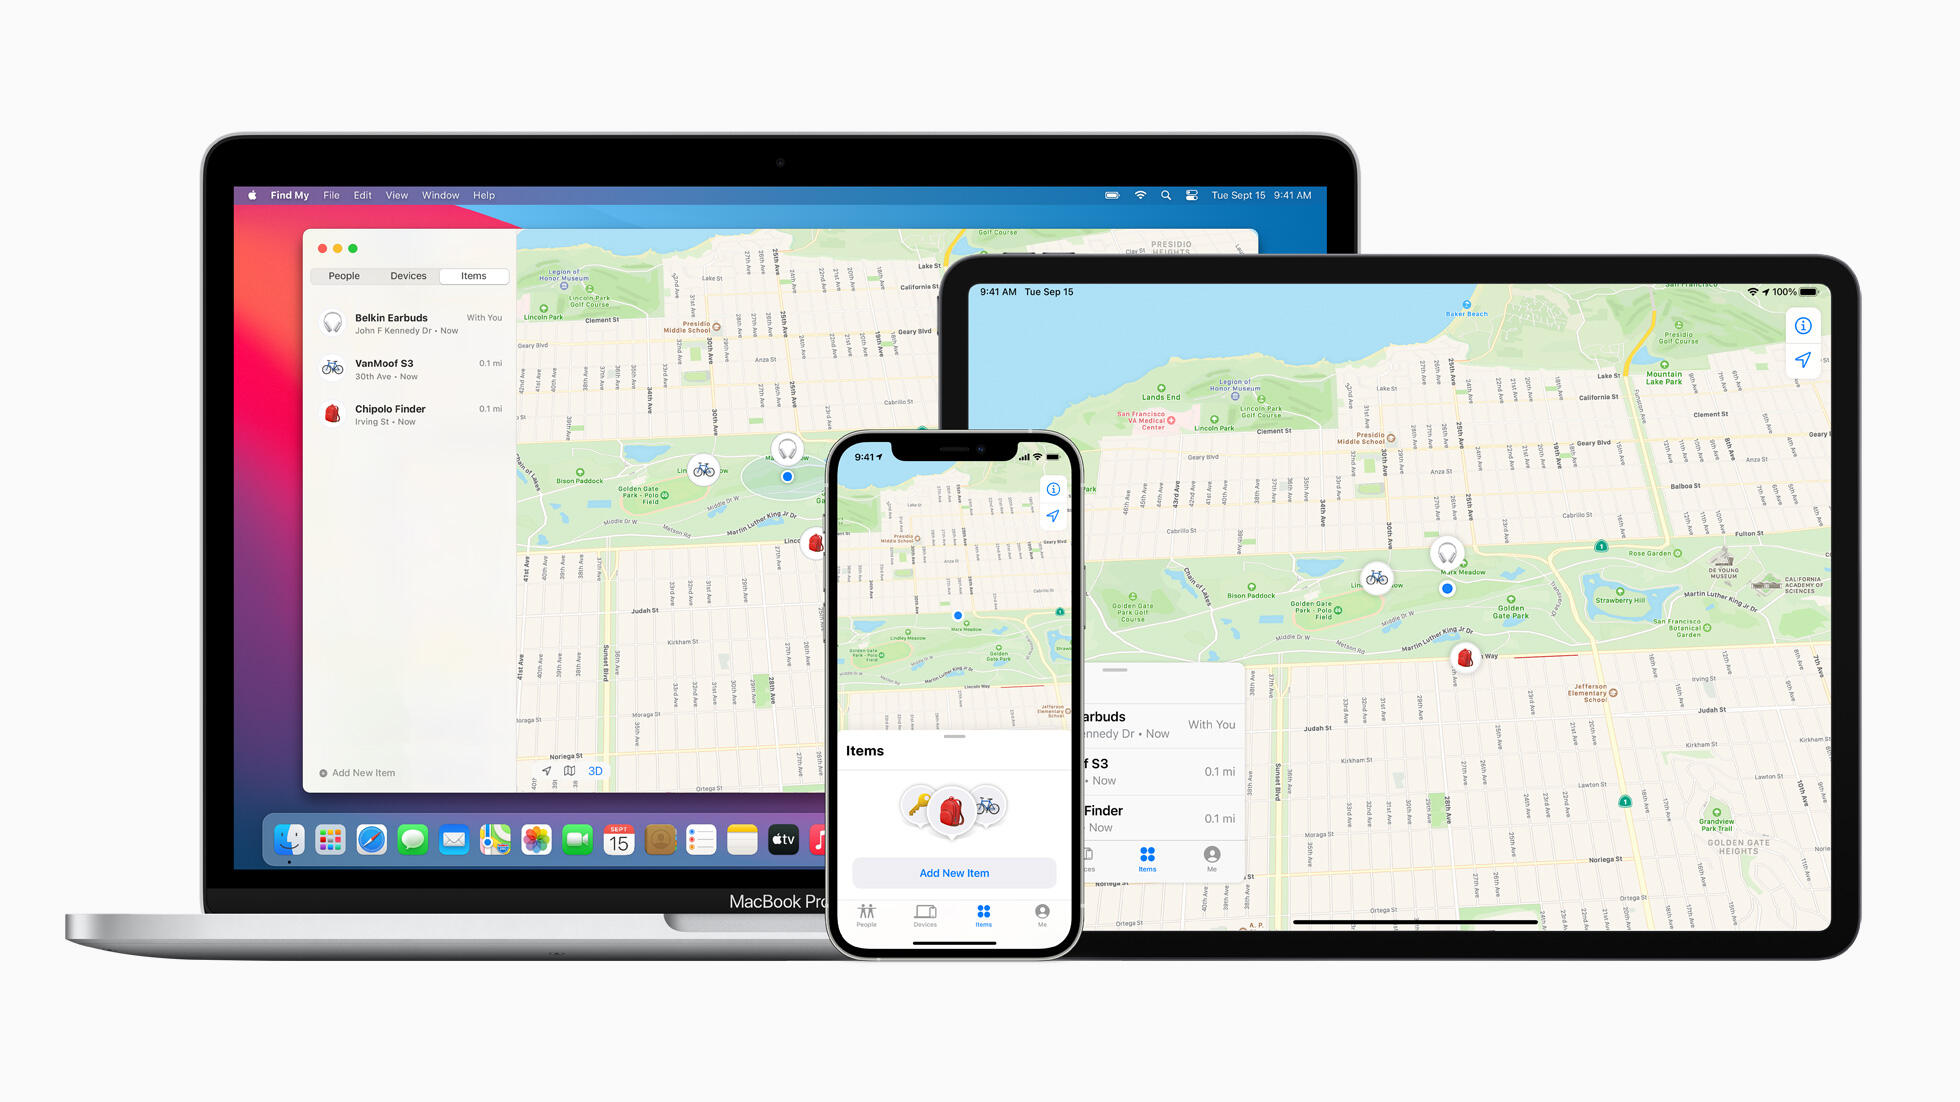 apple-find-my-network-now-offers-new-third-party-finding-experiences-macbookpro-ipadpro-iphone12pro-040721